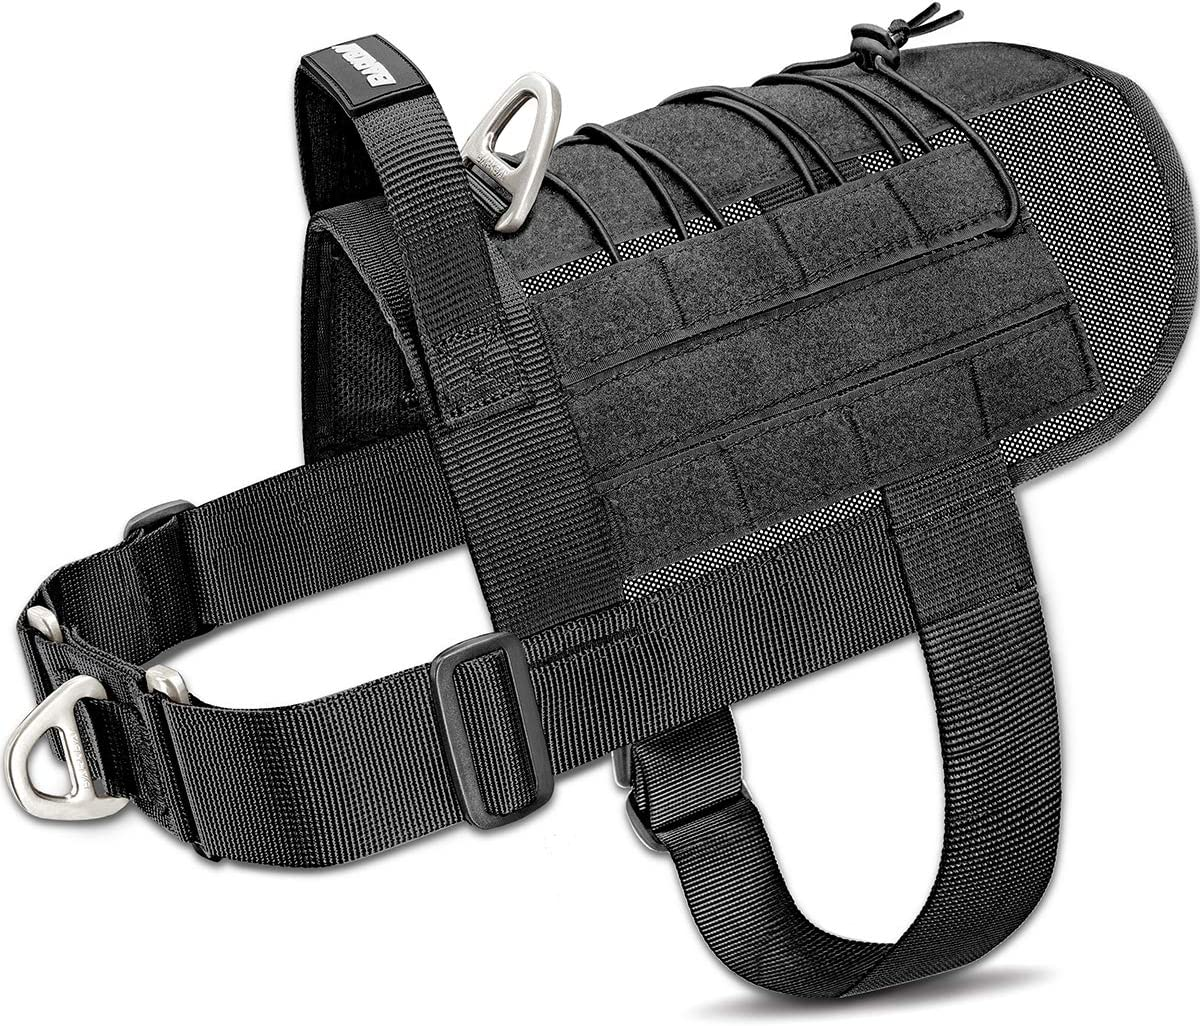 A photo of the BARKBAY Tactical Dog Harness Vest in gray color, with heavy-duty nylon straps and metal buckles.